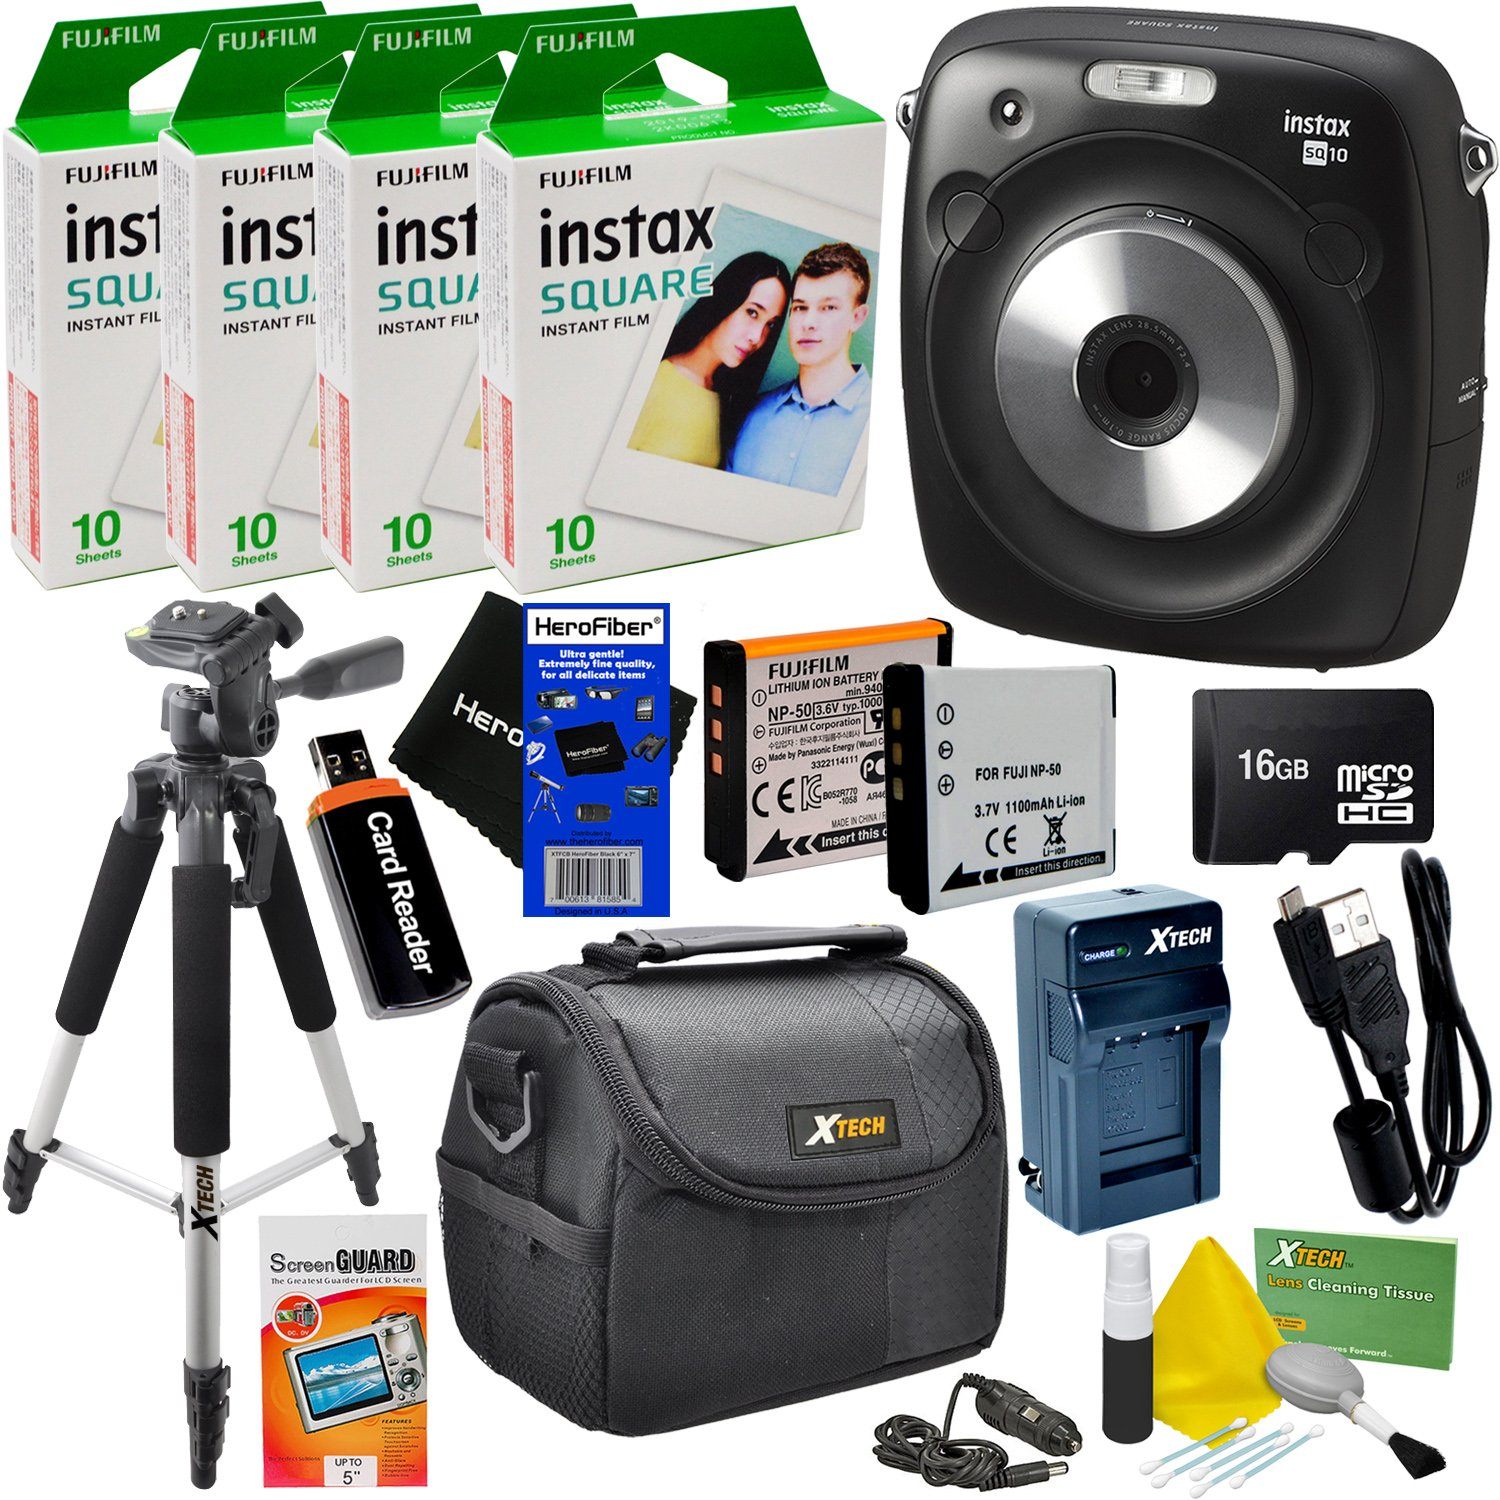 "Fujifilm Instax Square SQ10 Hybrid Instant Camera + 4 Fujifilm Instax Square Instant Films (40 Sheets) + 16GB Memory Card + 57"" Tripod + 9pc Accessory Kit w/ HeroFiber Ultra Gentle Cleaning Cloth"